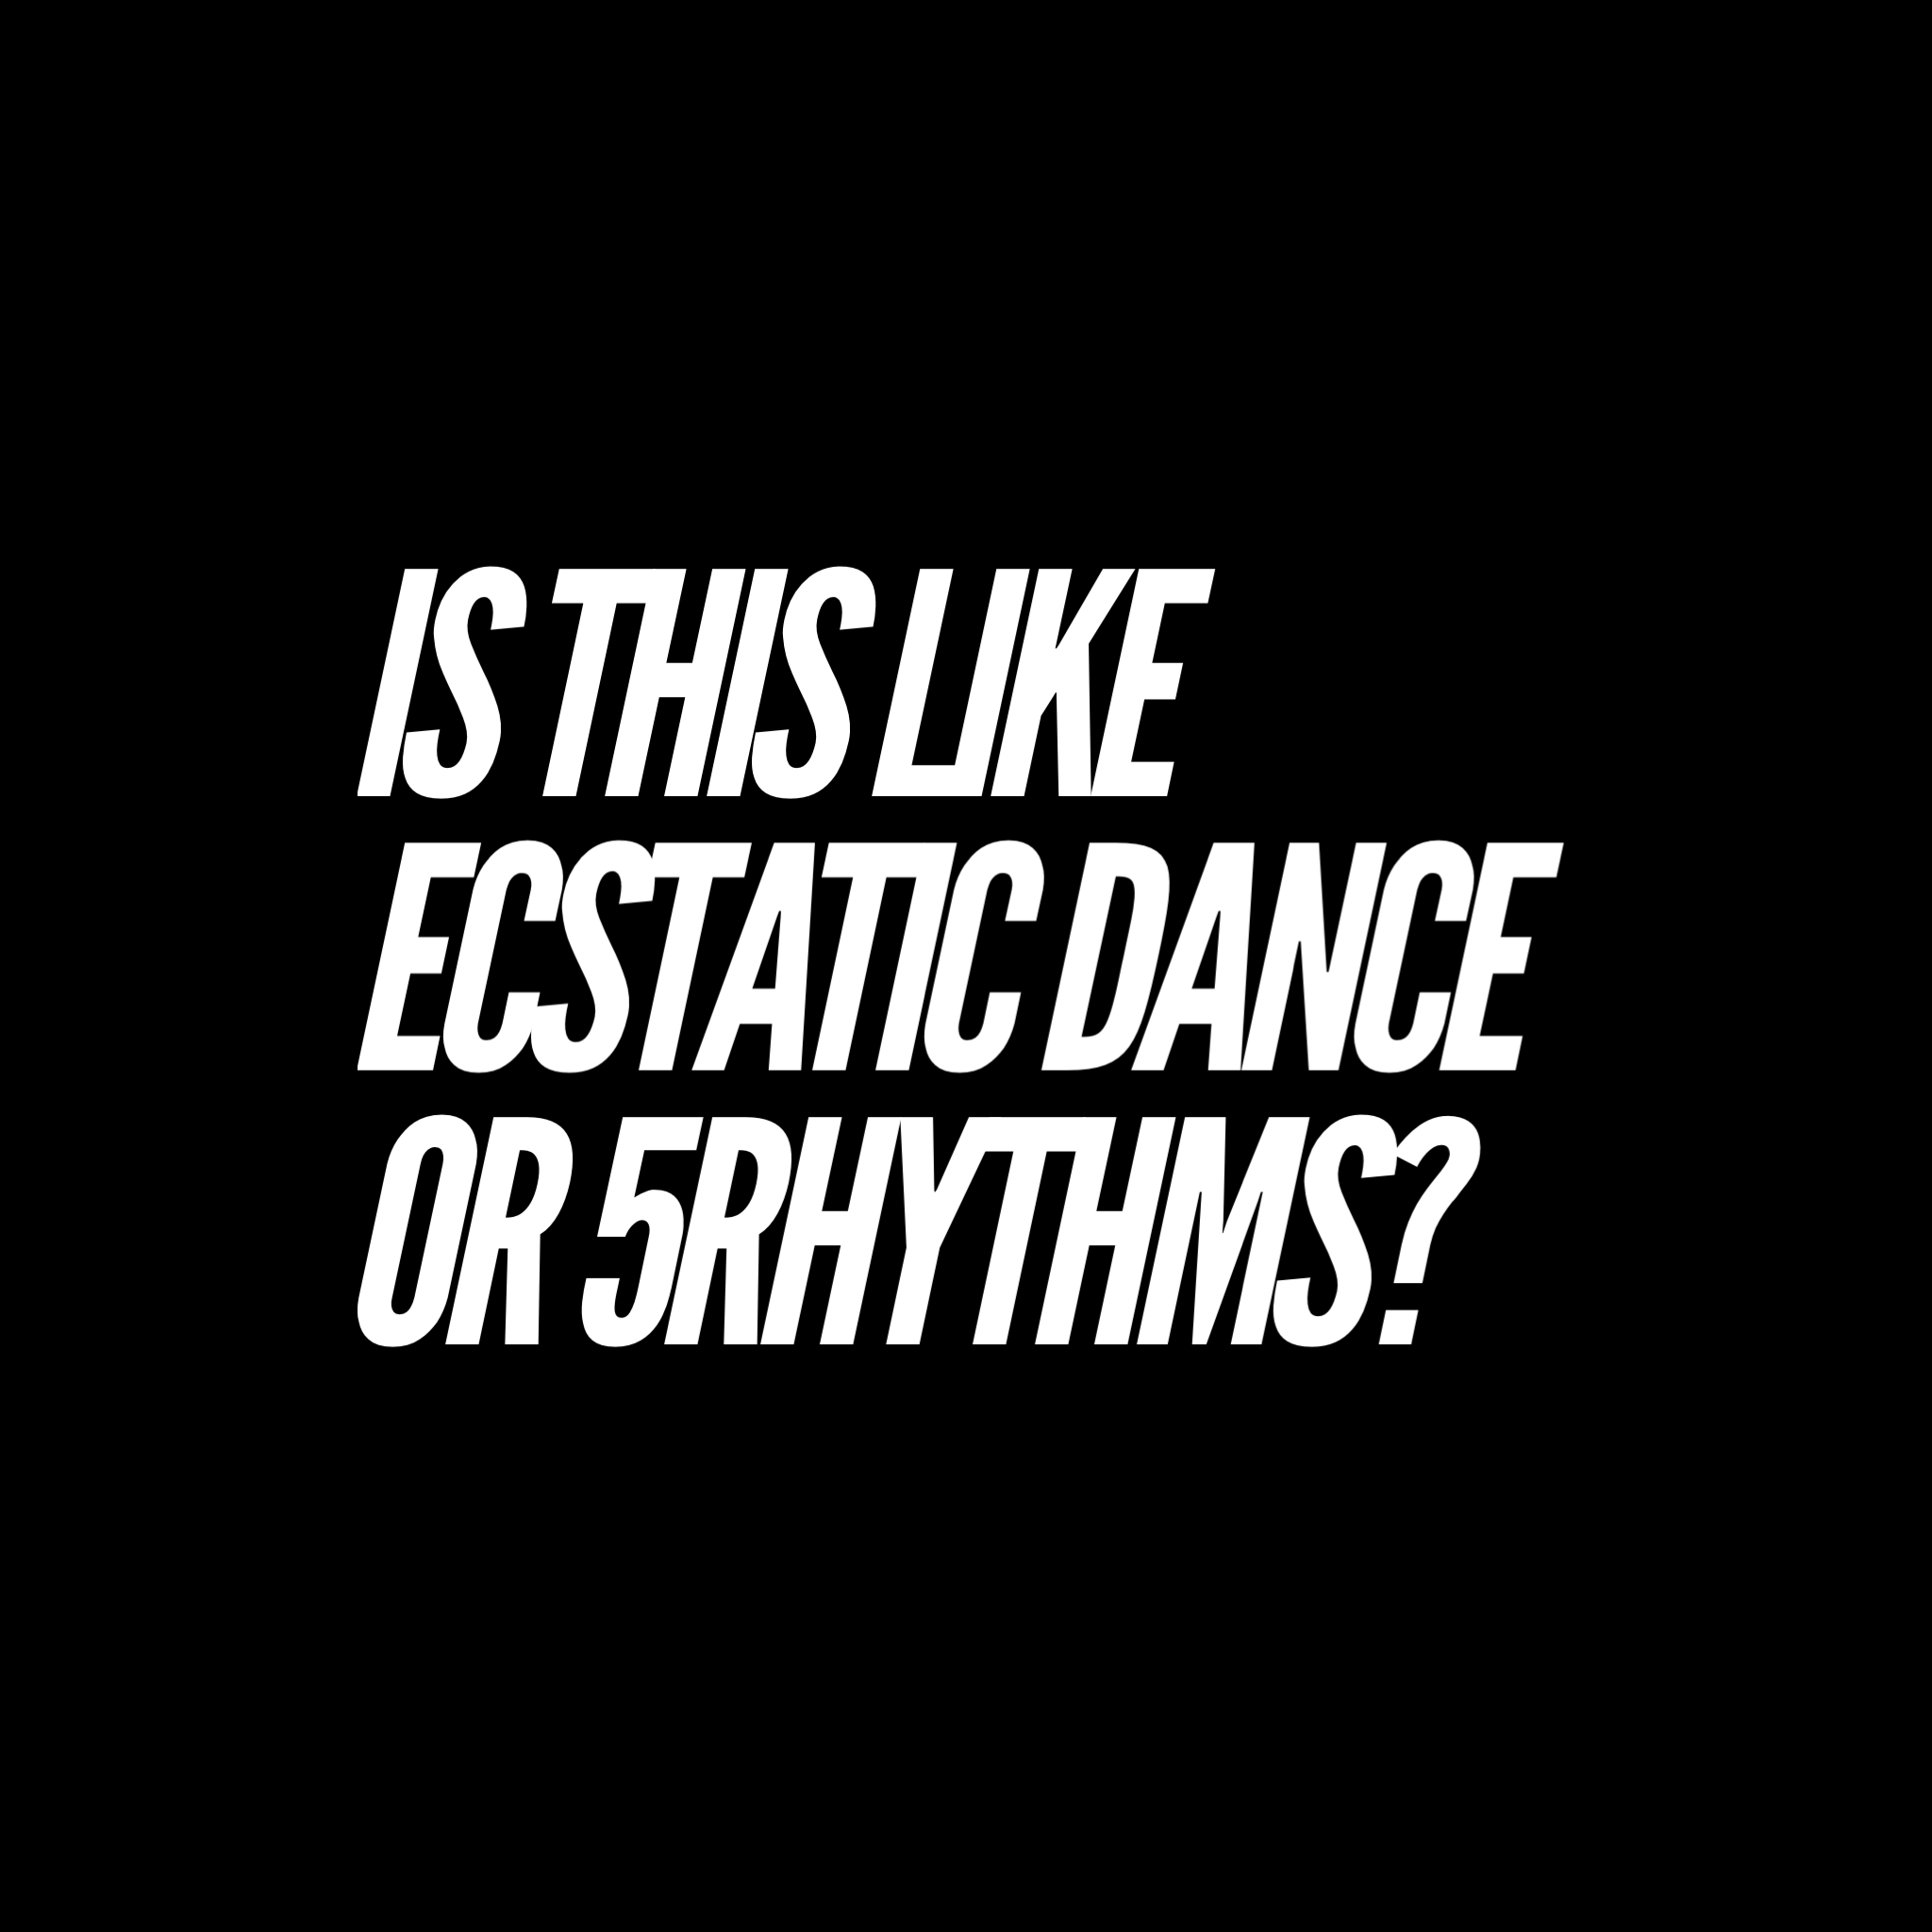 No, those are both more social experiences. DMT is not interactive—we are not dancing with one another but creating a supportive environment for personal exploration. For 7 years people have been trying to equate it to 'something else' but it doesn't work because DMT is so uniquely different than any other dance modality out there today.